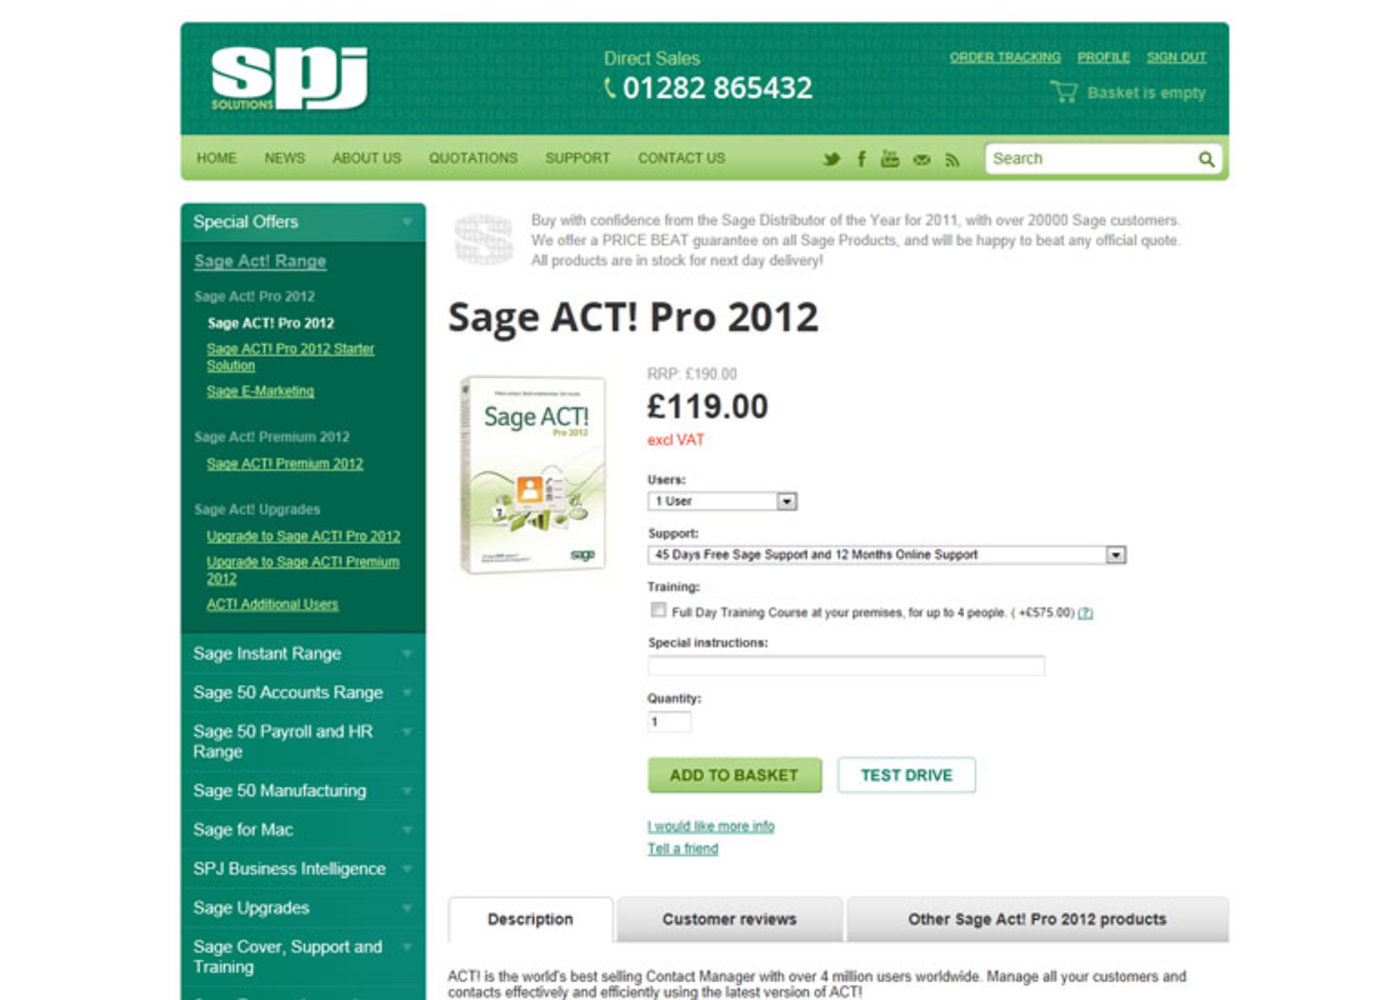 SPJ Solutions Product page